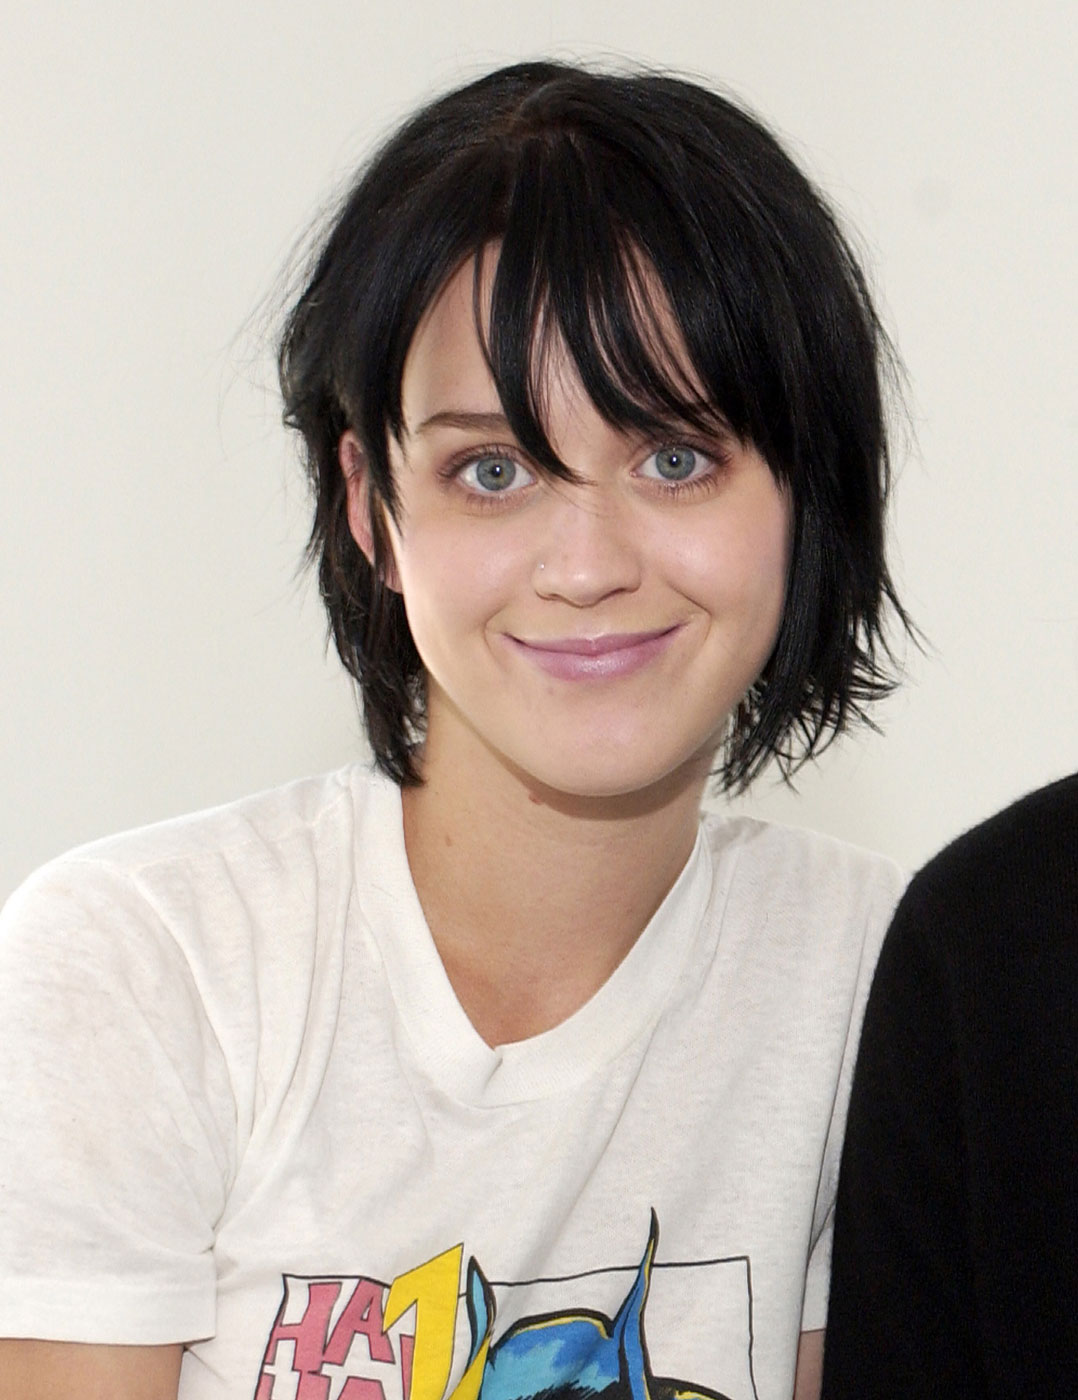 Katy Perry poses during a portrait session on September 12, 2002 in West Hollywood, California.